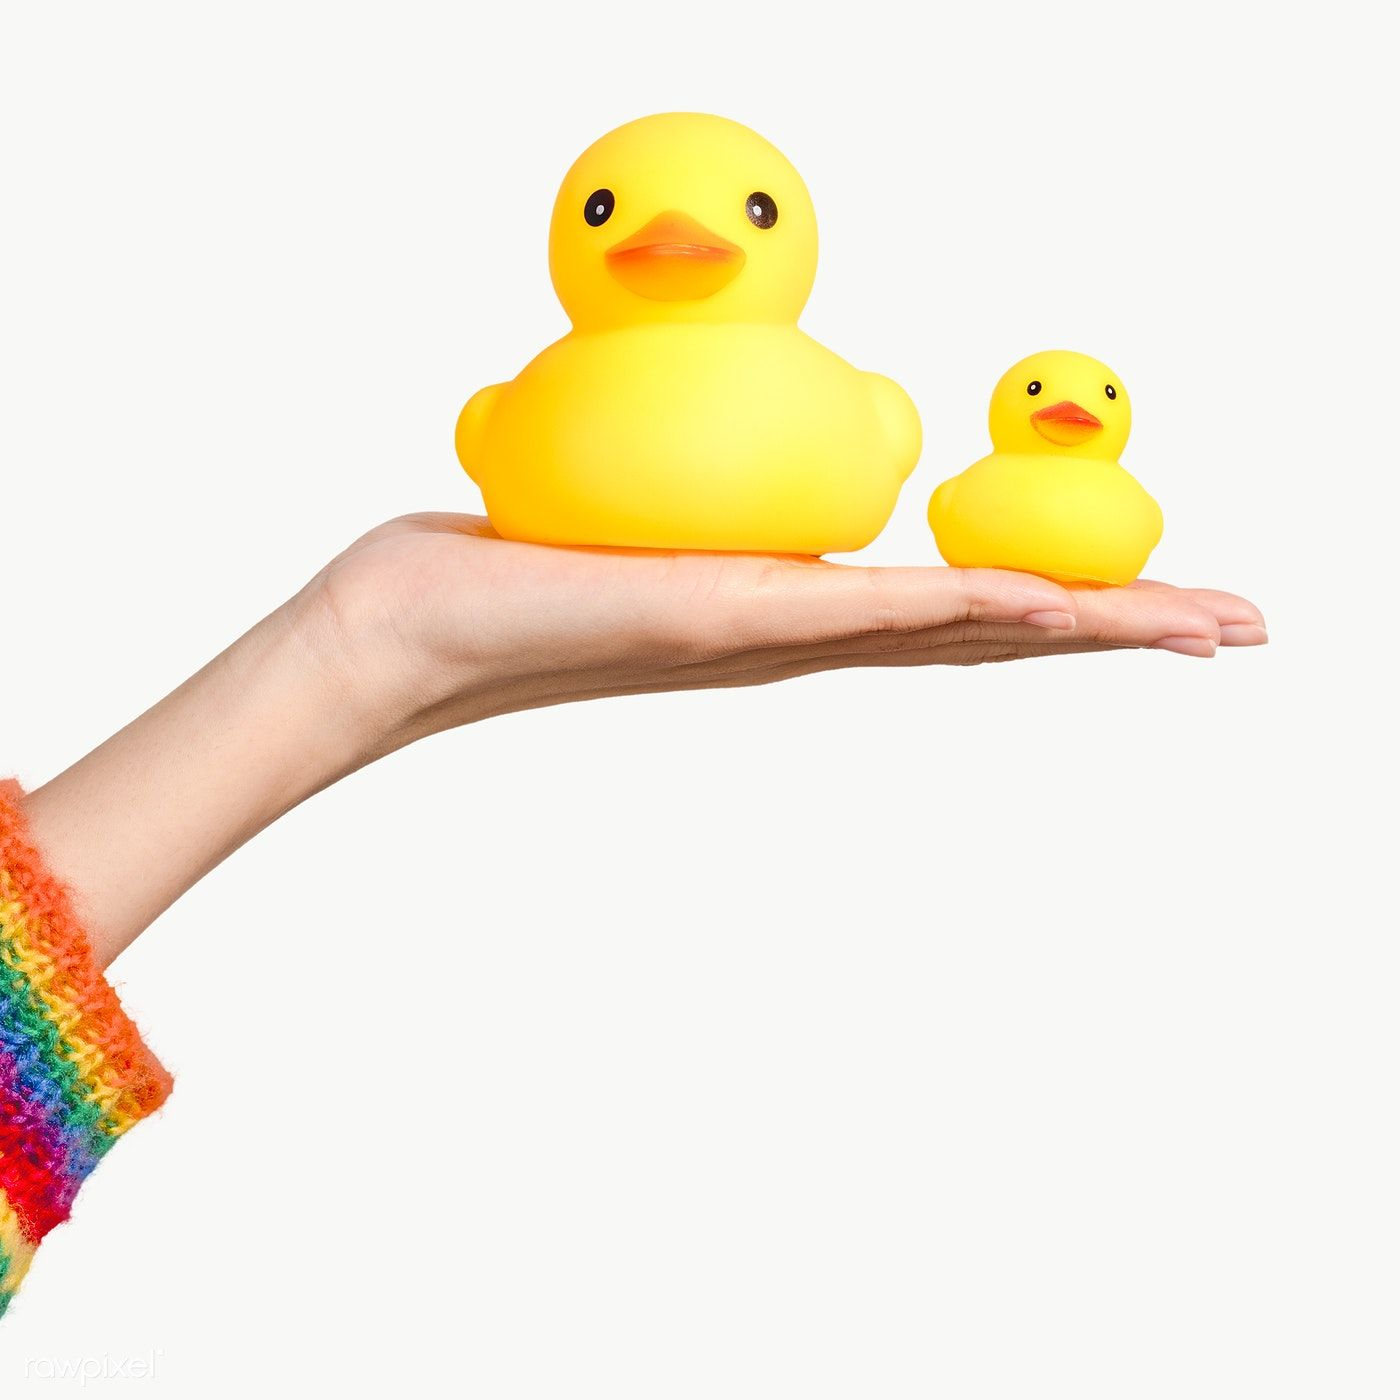 Cute Rubber Ducks On A Hand Design Element Free Image By Rawpixel Com Jira Rubber Duck Design Element Hand Designs